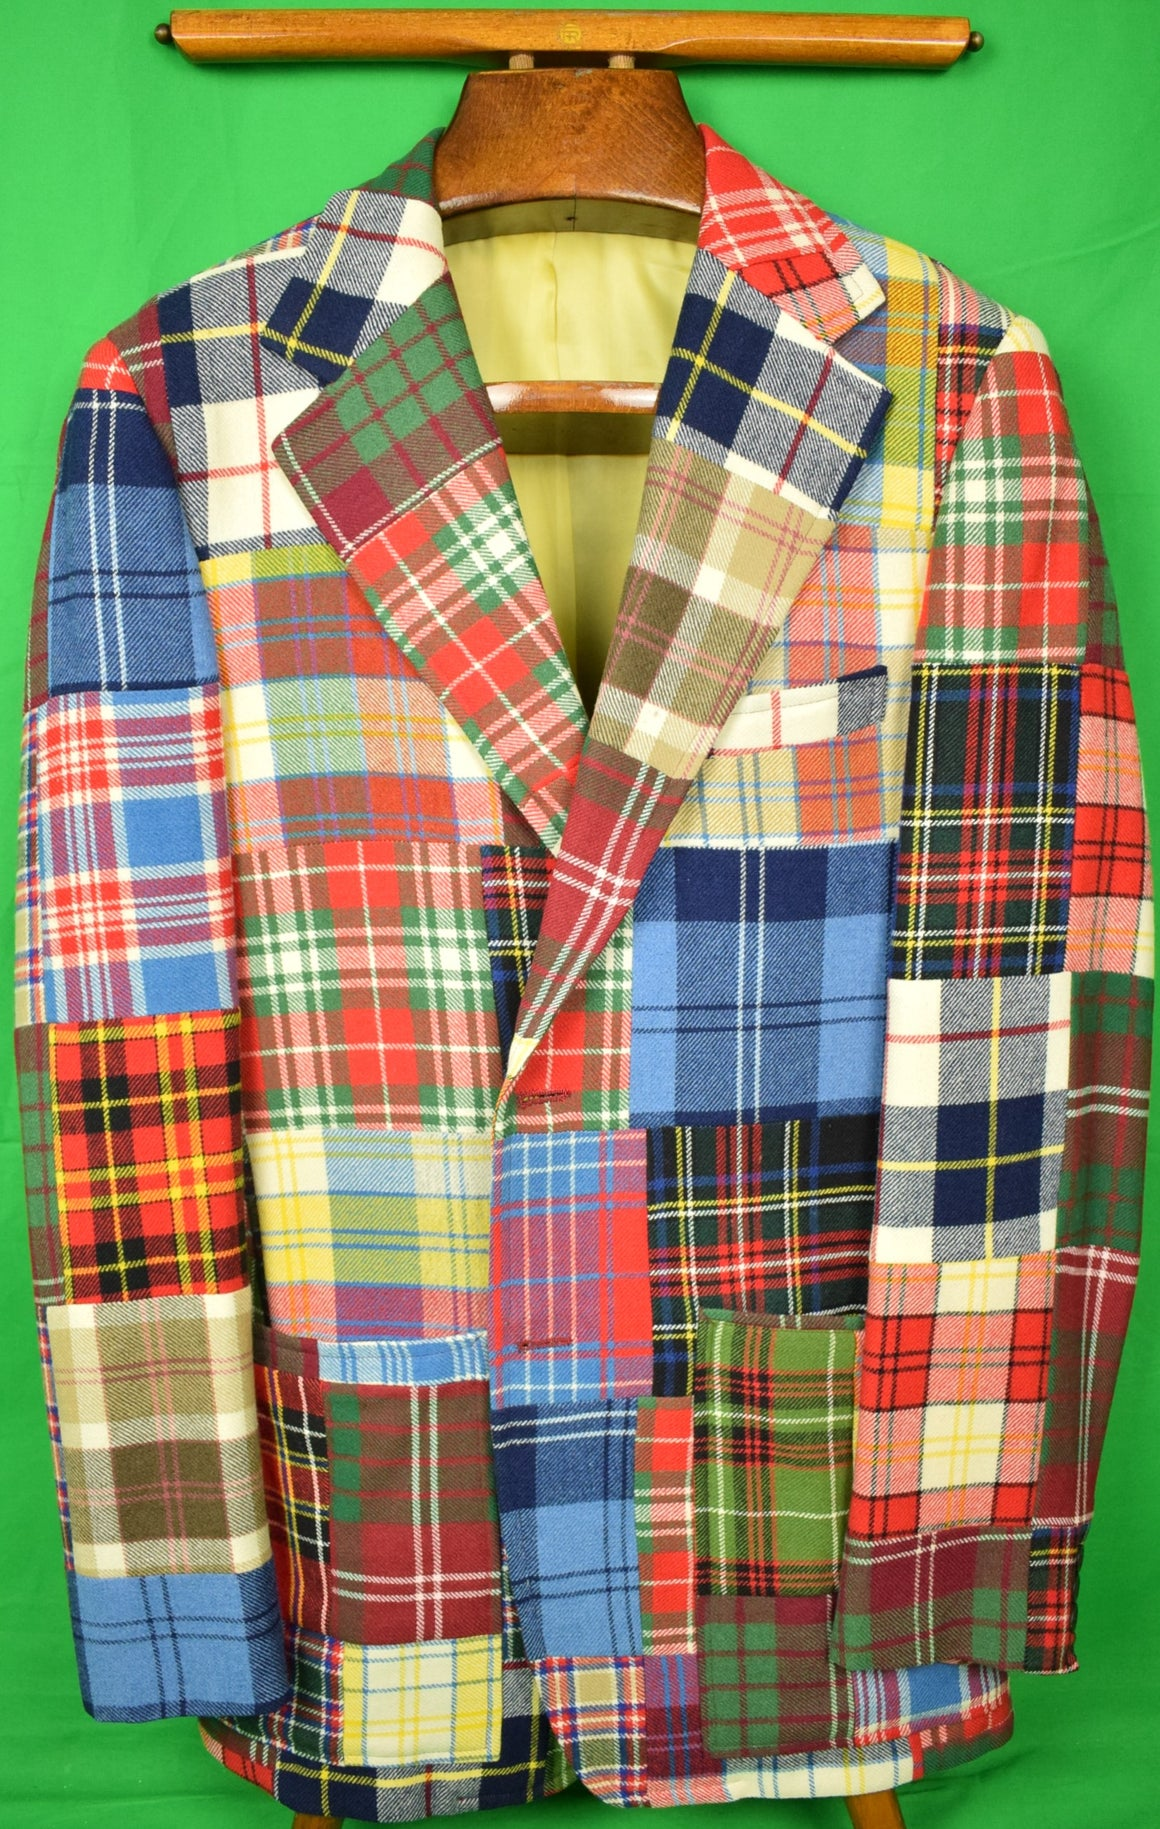 Patch Tartan Panel Gent's c1973 Sport Jacket Sz: 40R